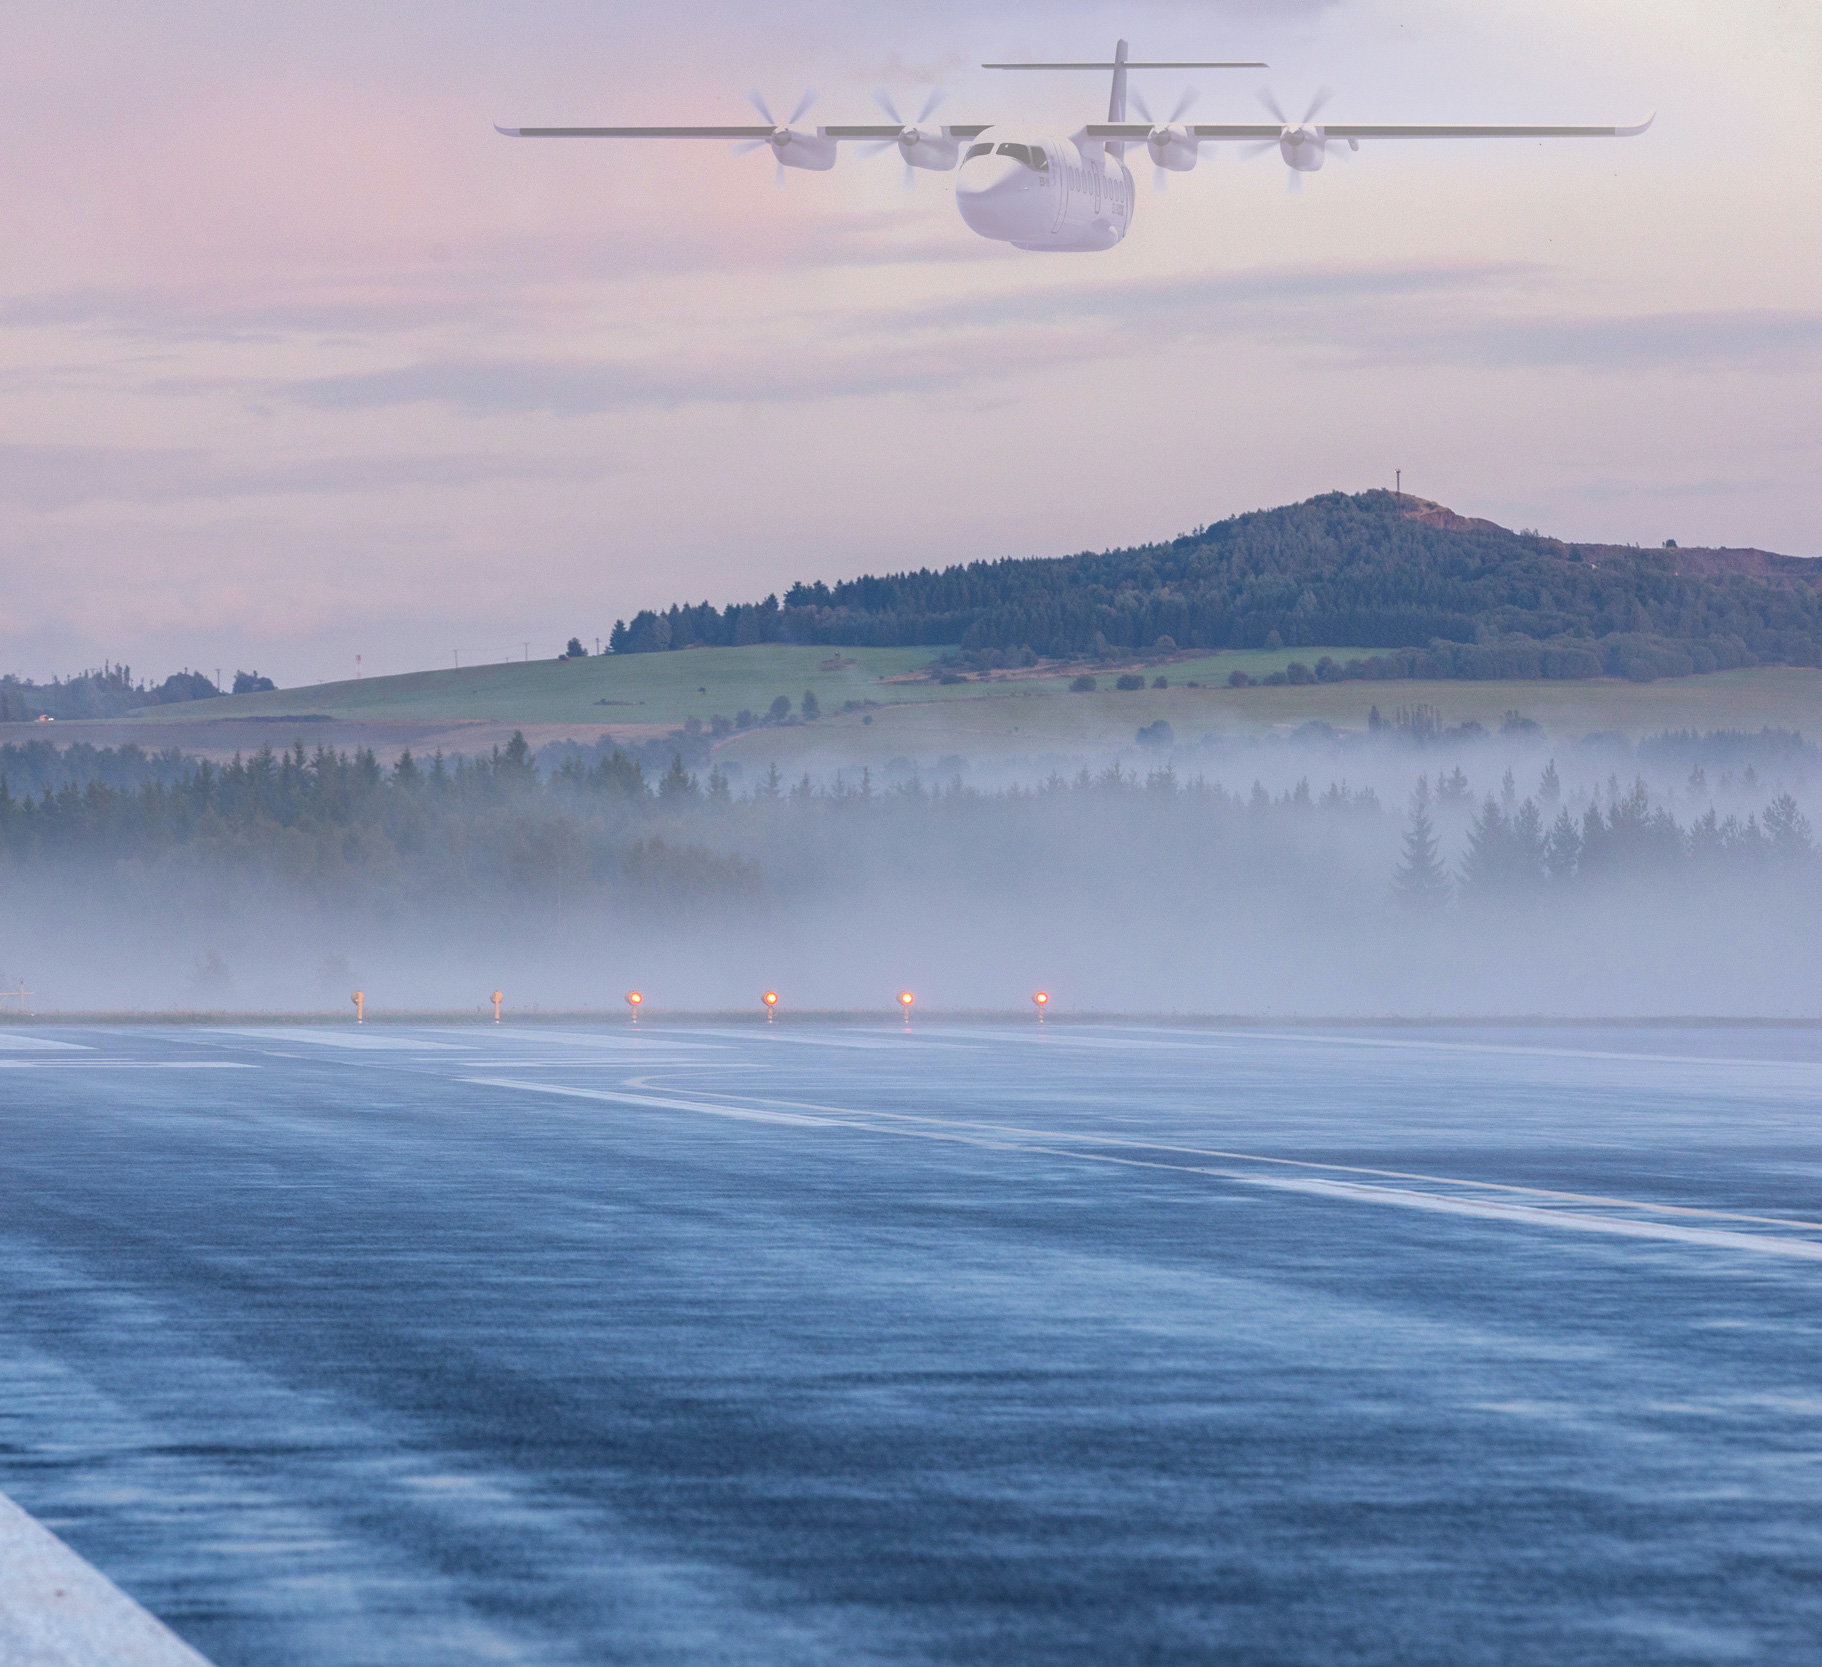 Empty runway at airport during a foggy sunrise